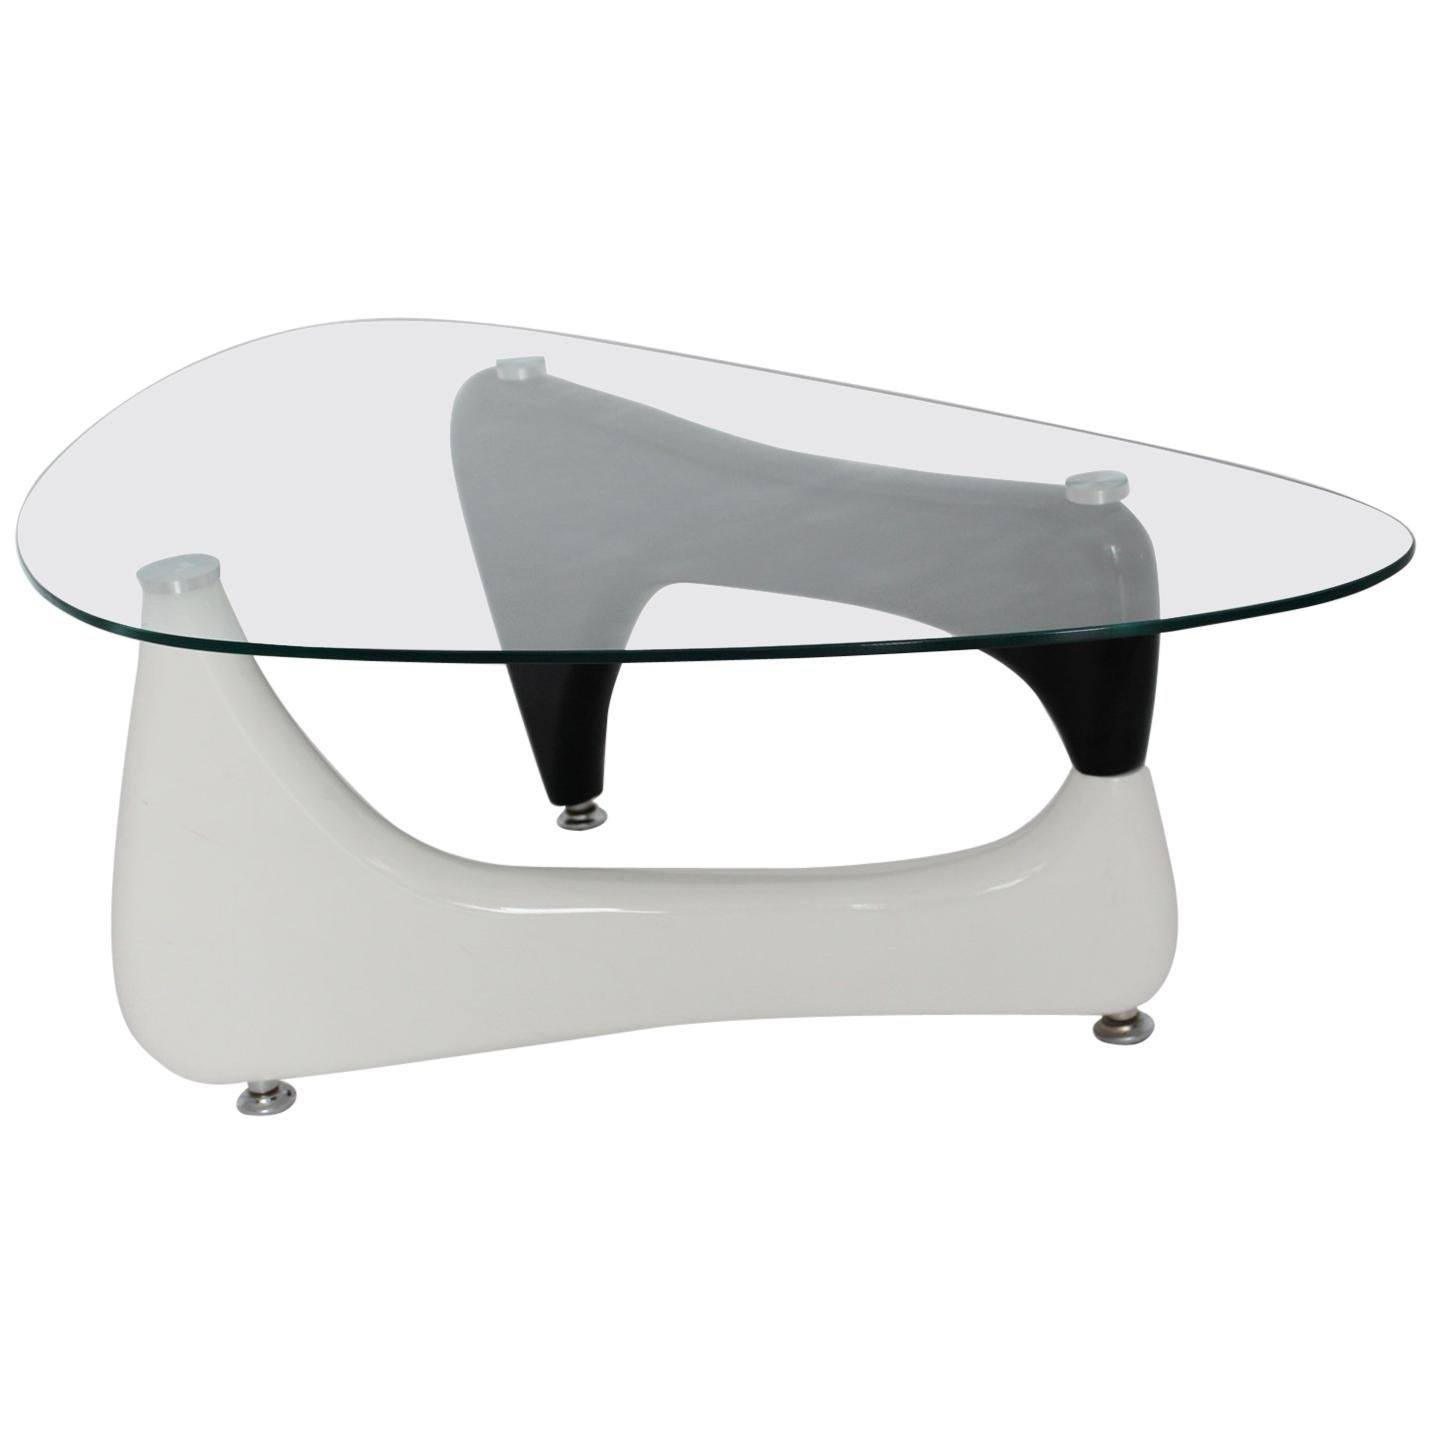 Vintage Black and White Coffee Table or Sofa Table Wood Glass, 1970s